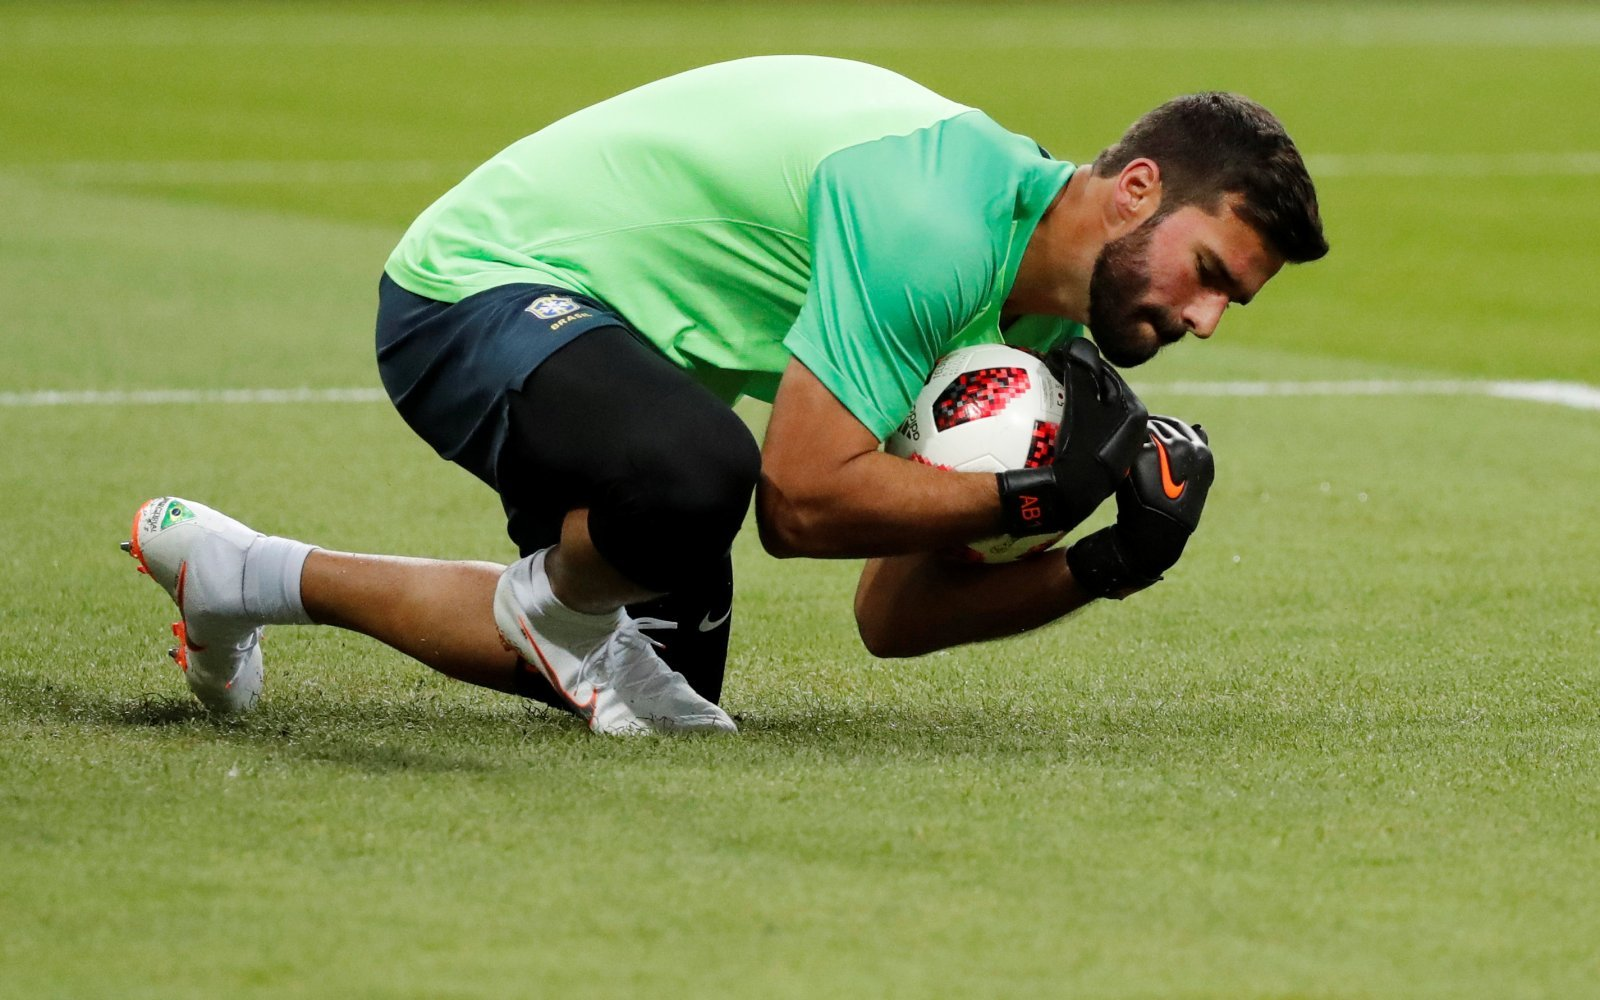 Liverpool's Alisson deal is bad news for Arsenal's title ambitions